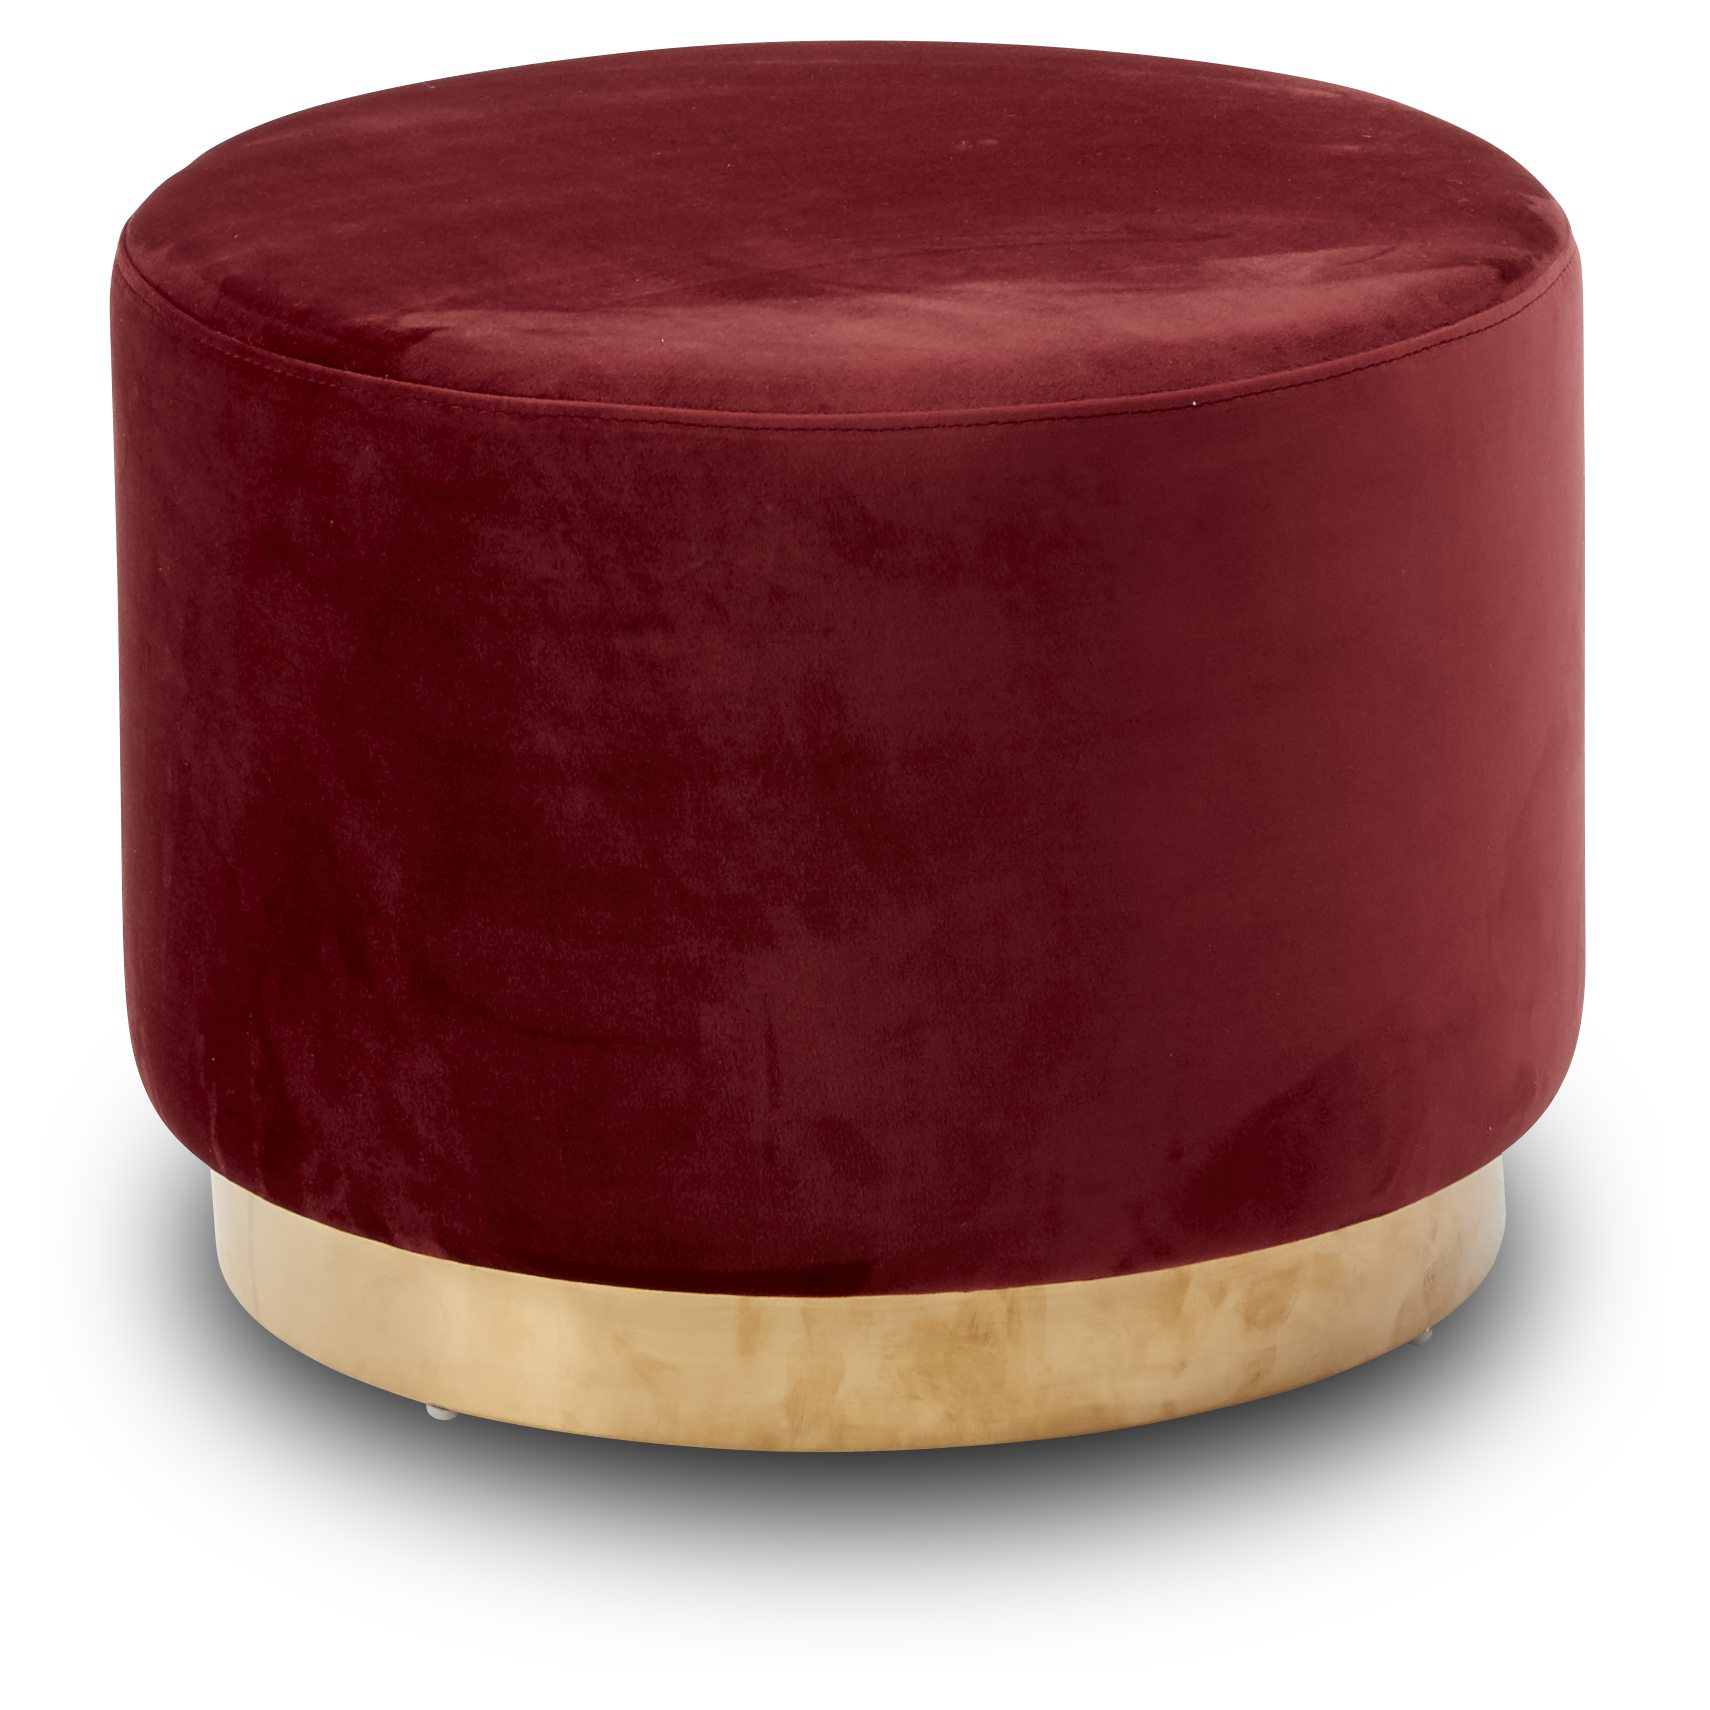 Gold Sofa puf - Barn red 2028-51 velour stof og Sokkel i messing